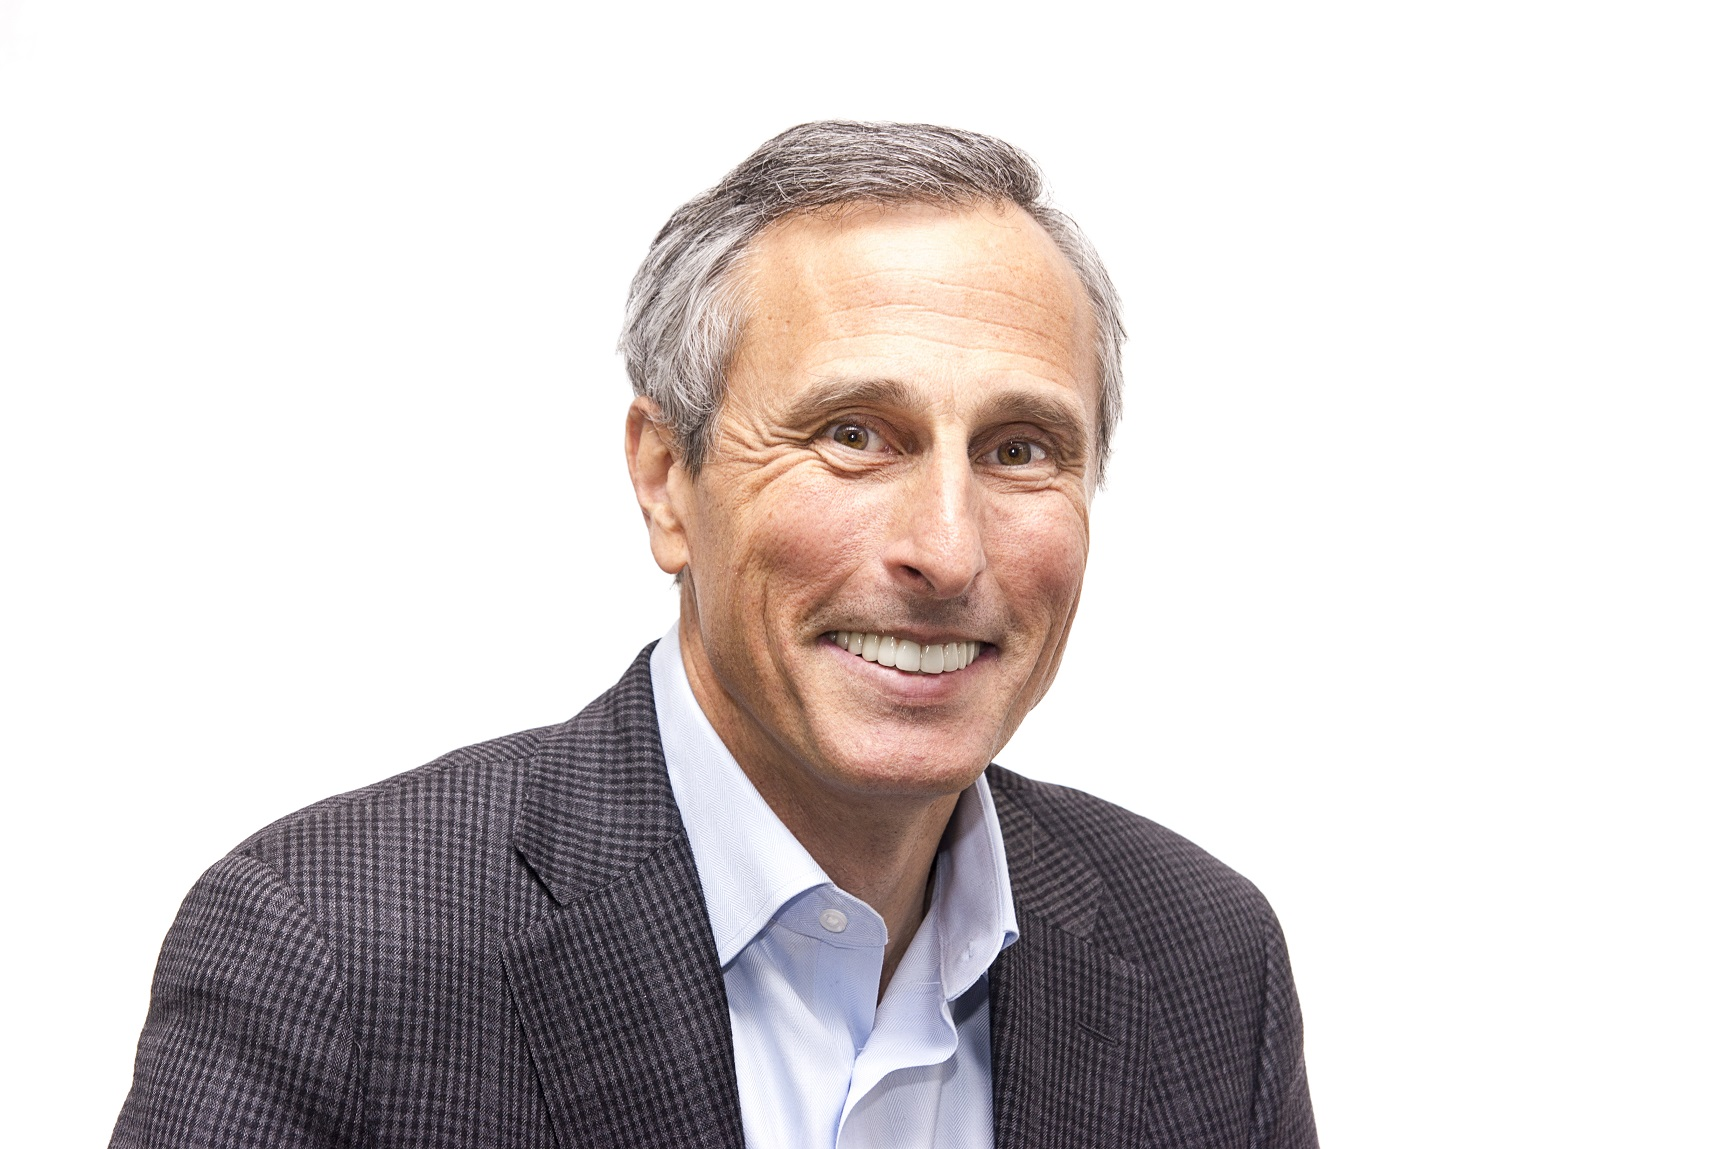 Ed Eger, CEO, OANDA Corporation